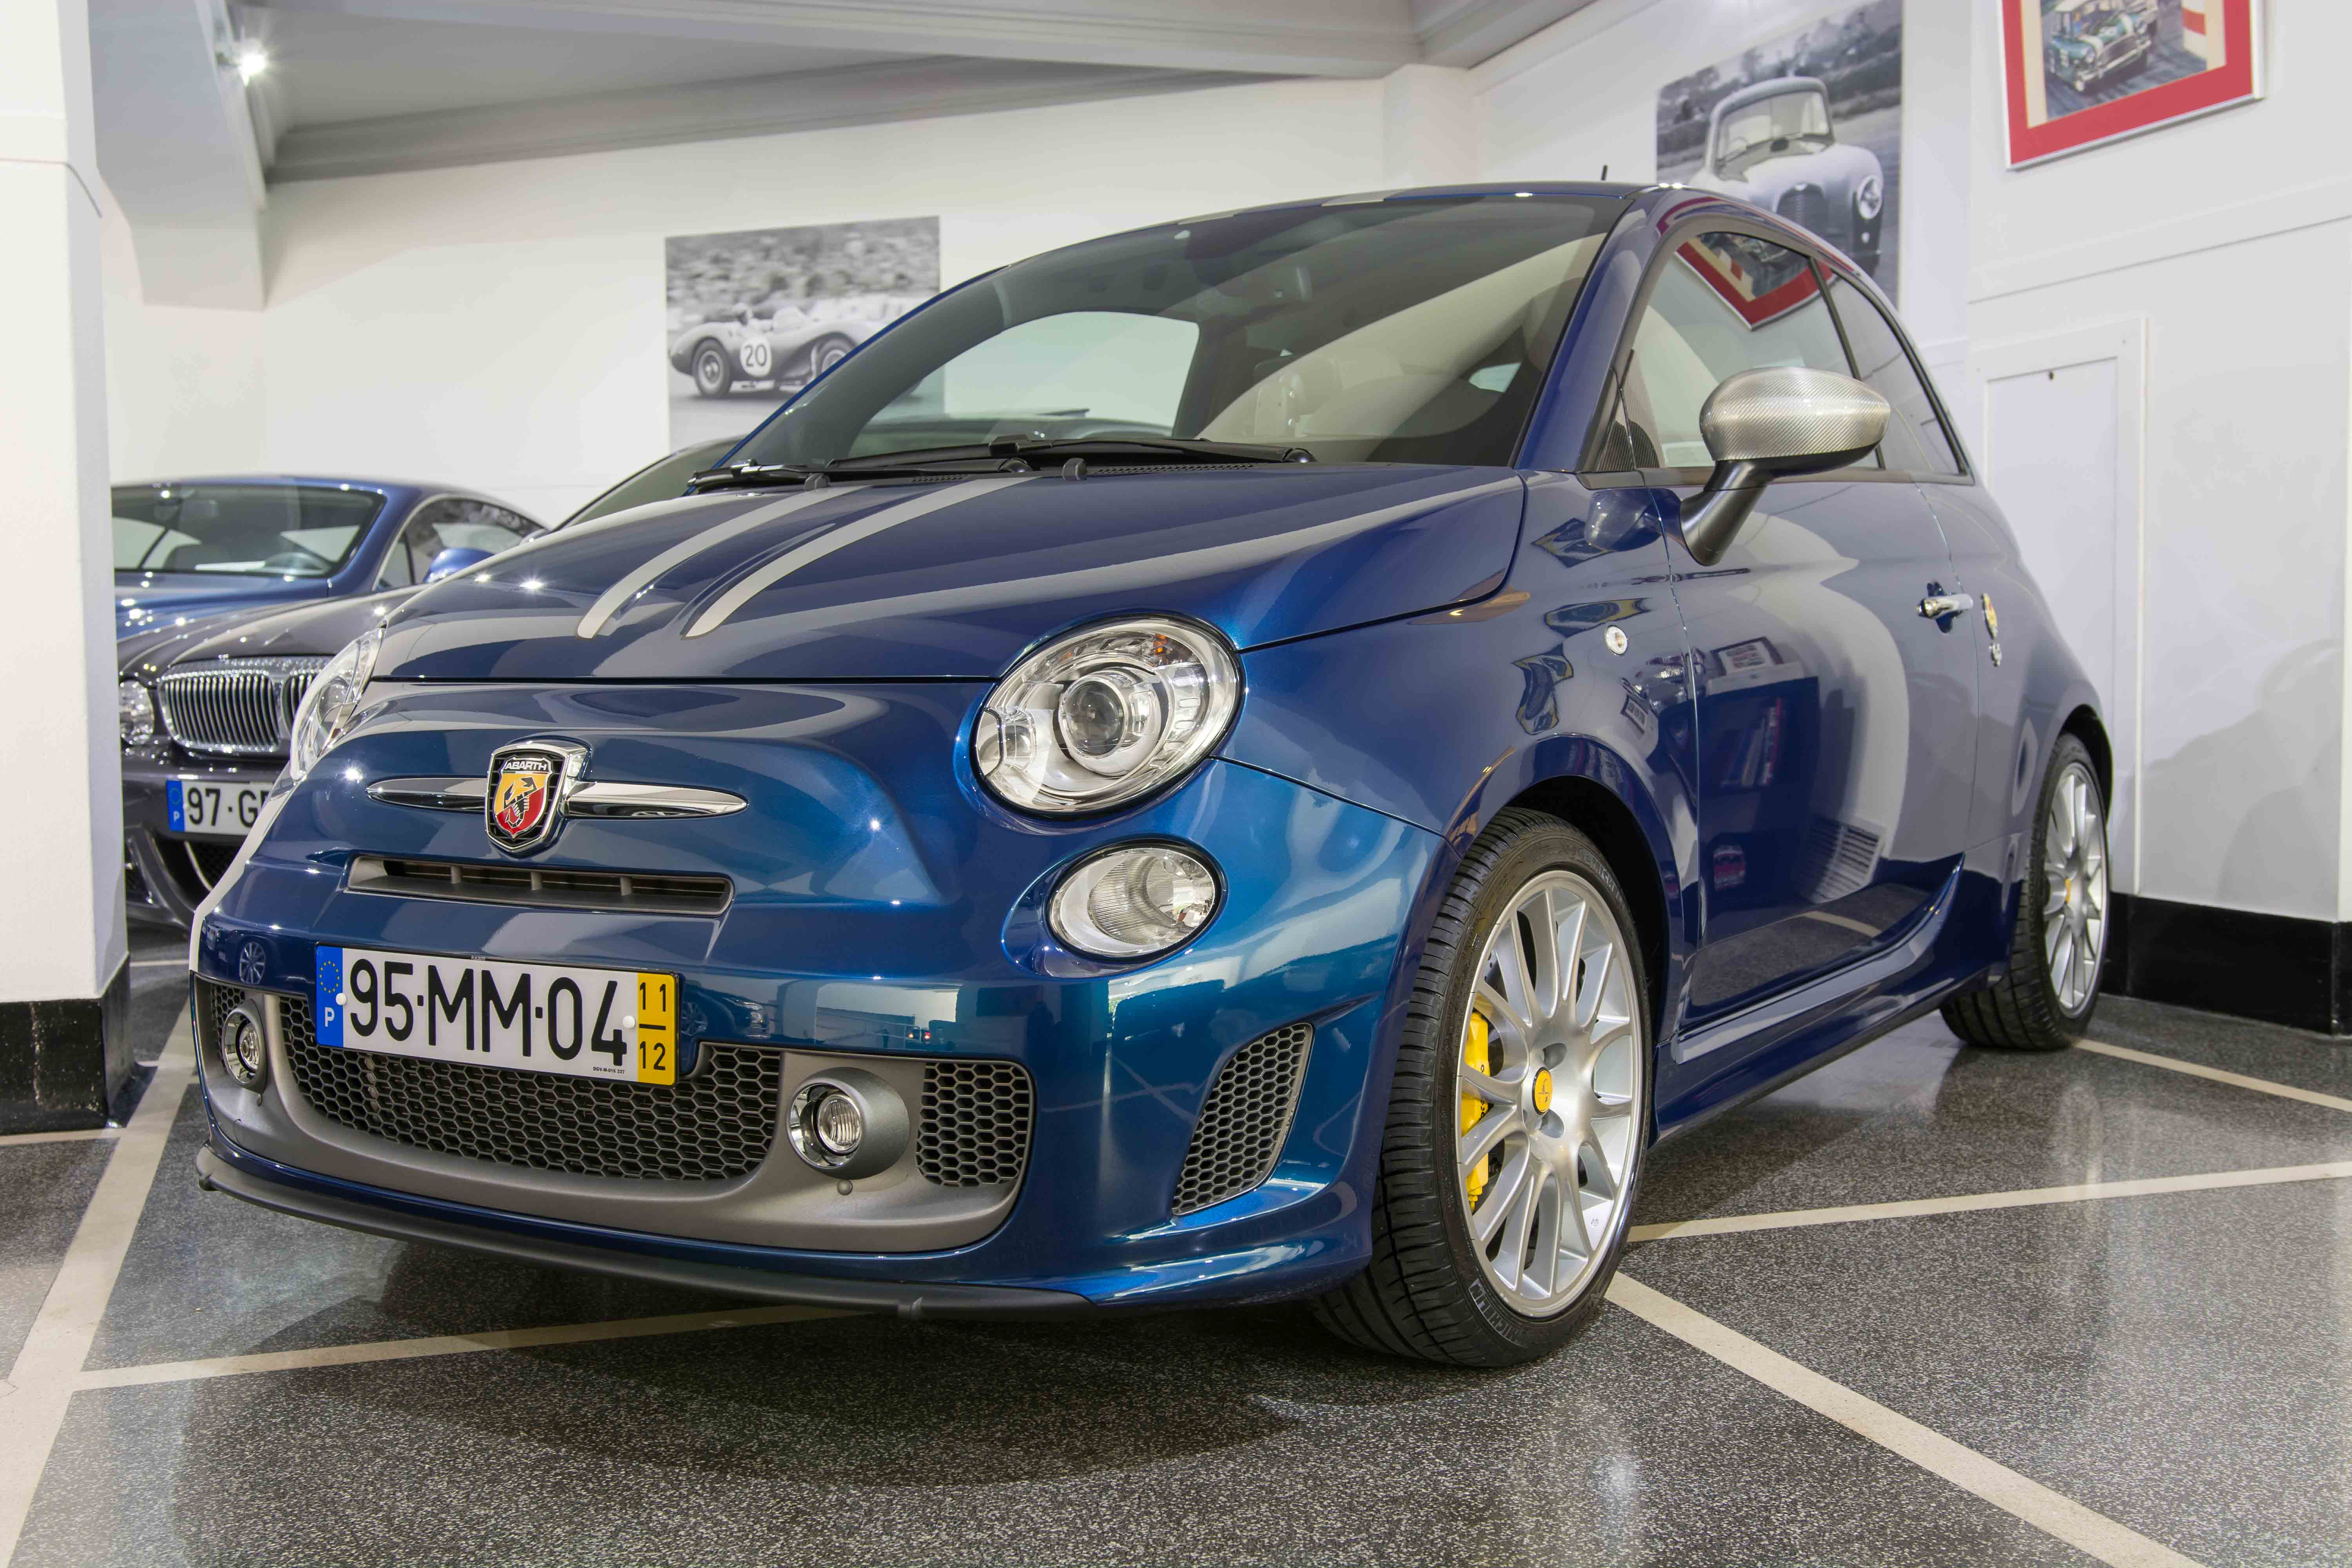 gear top fiat hatch sale abarth hot group ferrari boat driven ab for themed review tributo rivale